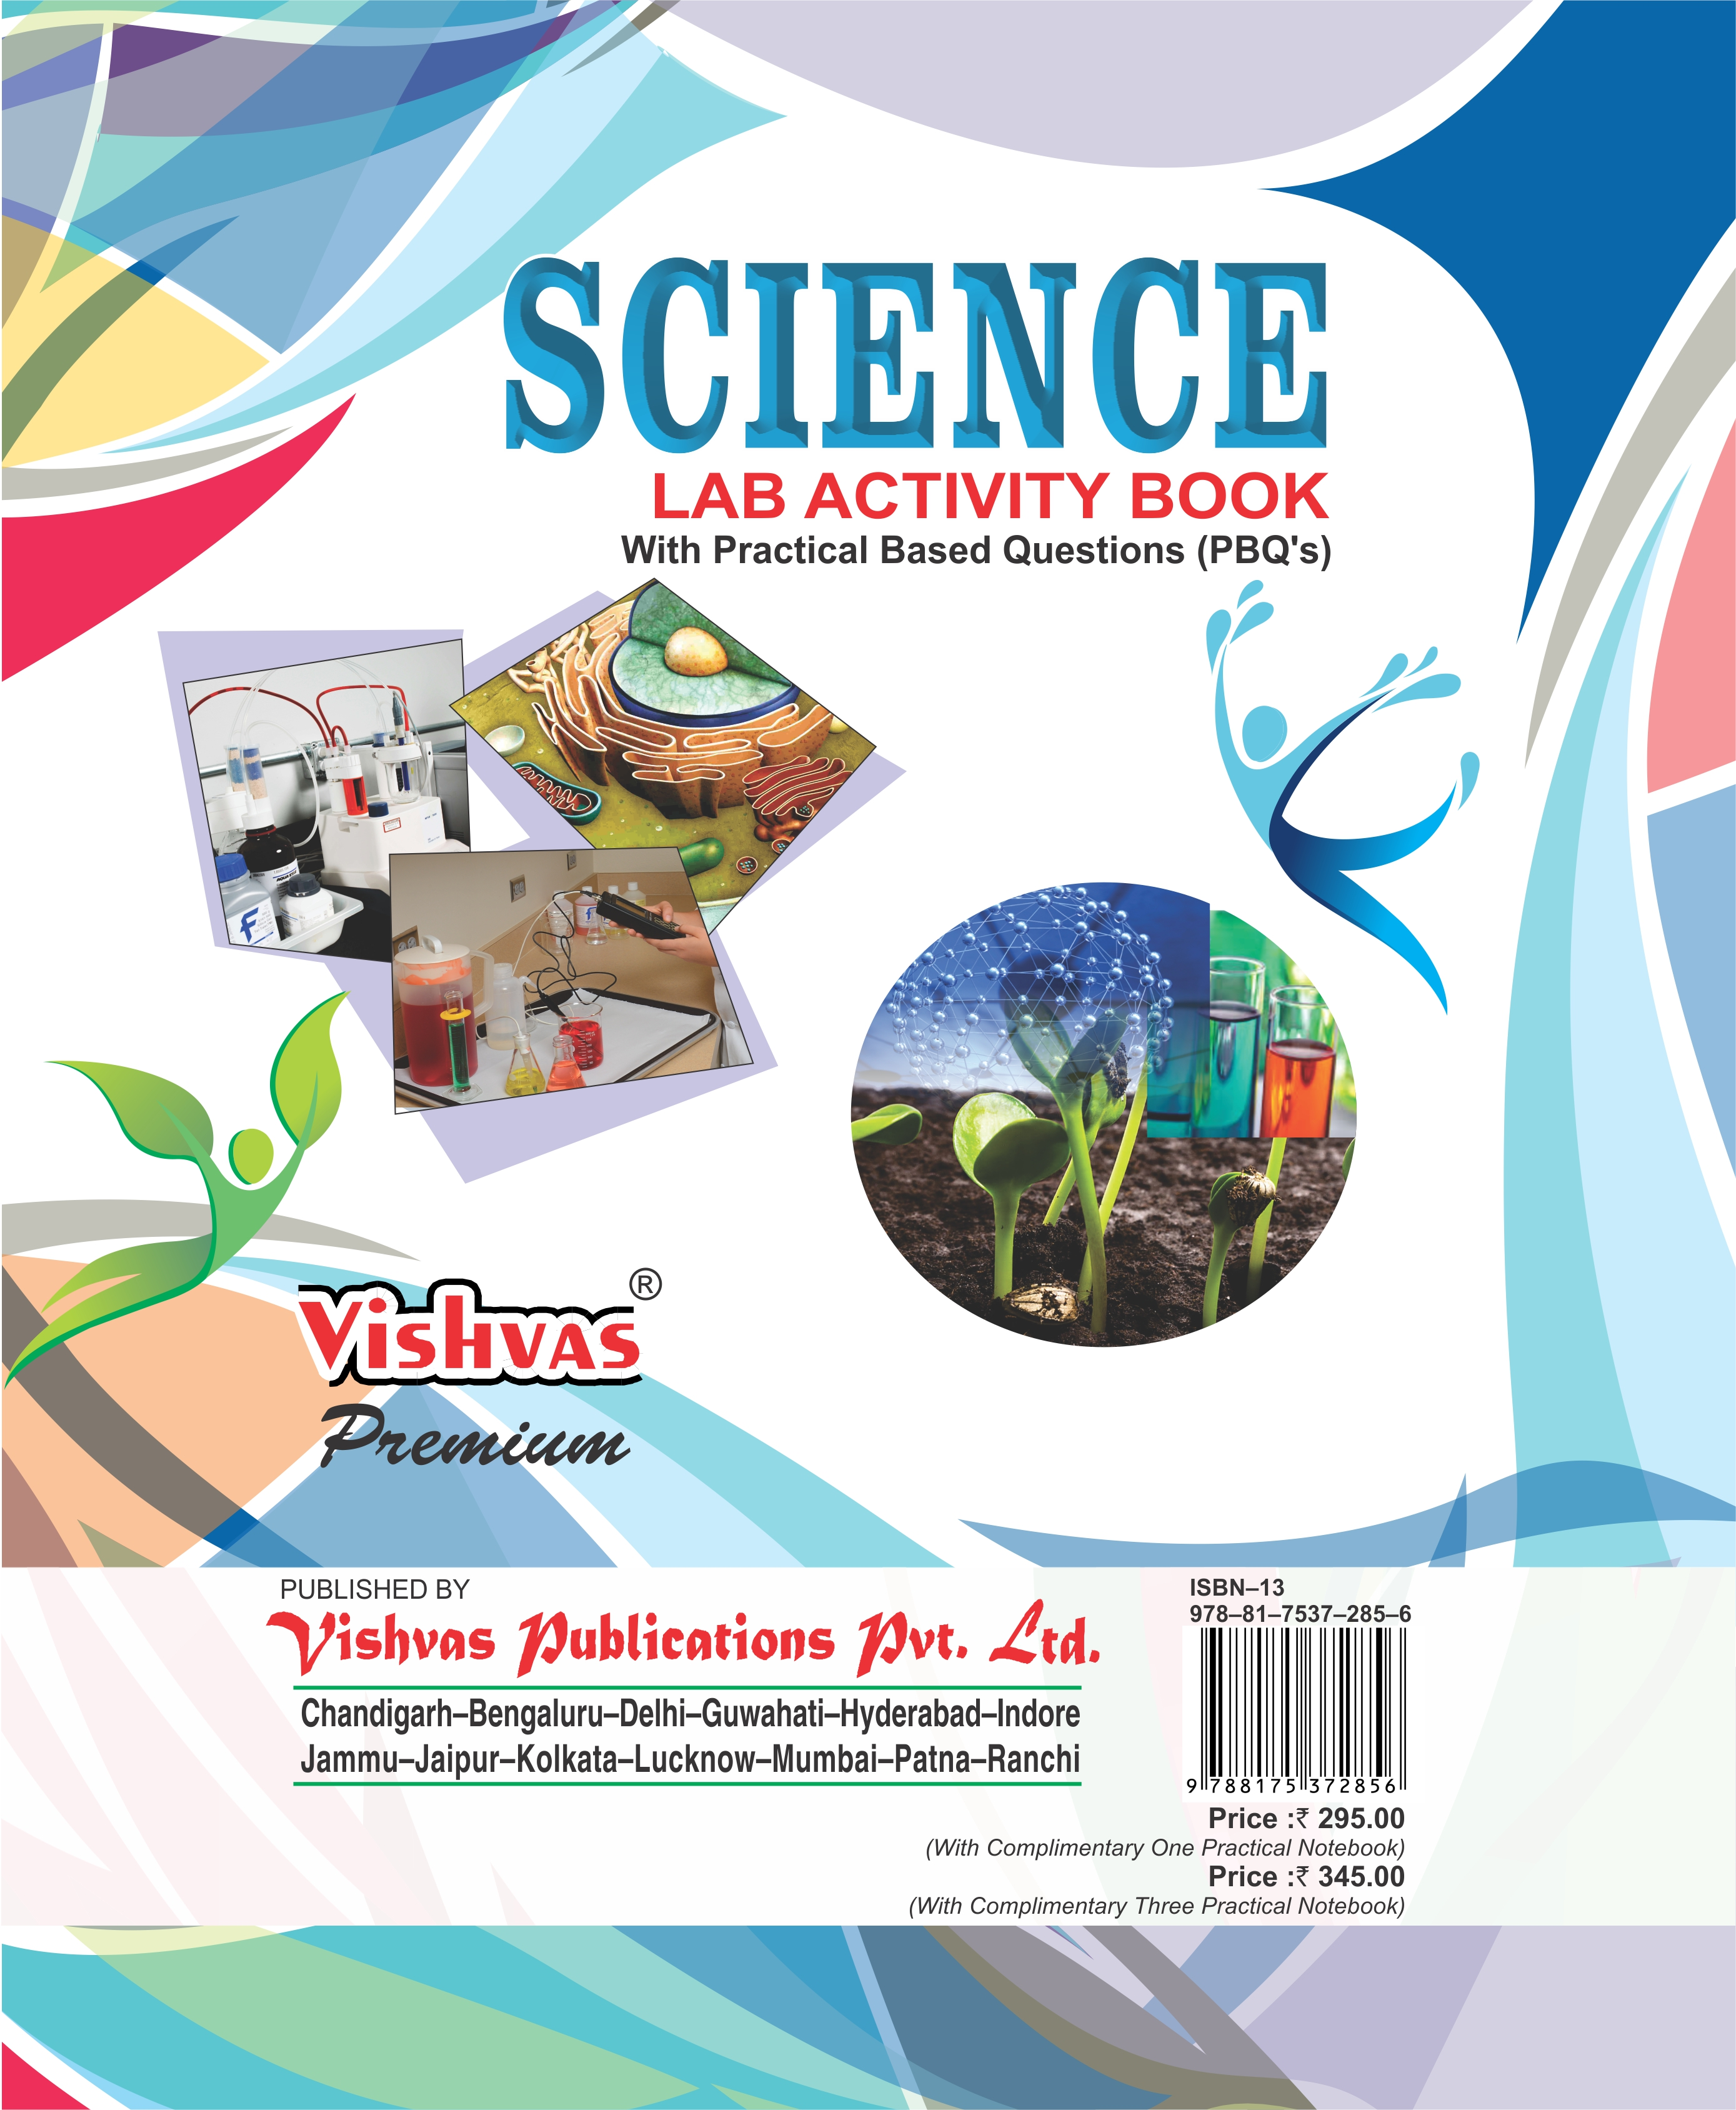 CBSE-2019-20-Science Lab Activity Book-Class-X- PBQ's-With 3 Complimentary  Notebook, Class 10th As Per Latest Syllabus Issued By Cbse-vishvasbooks